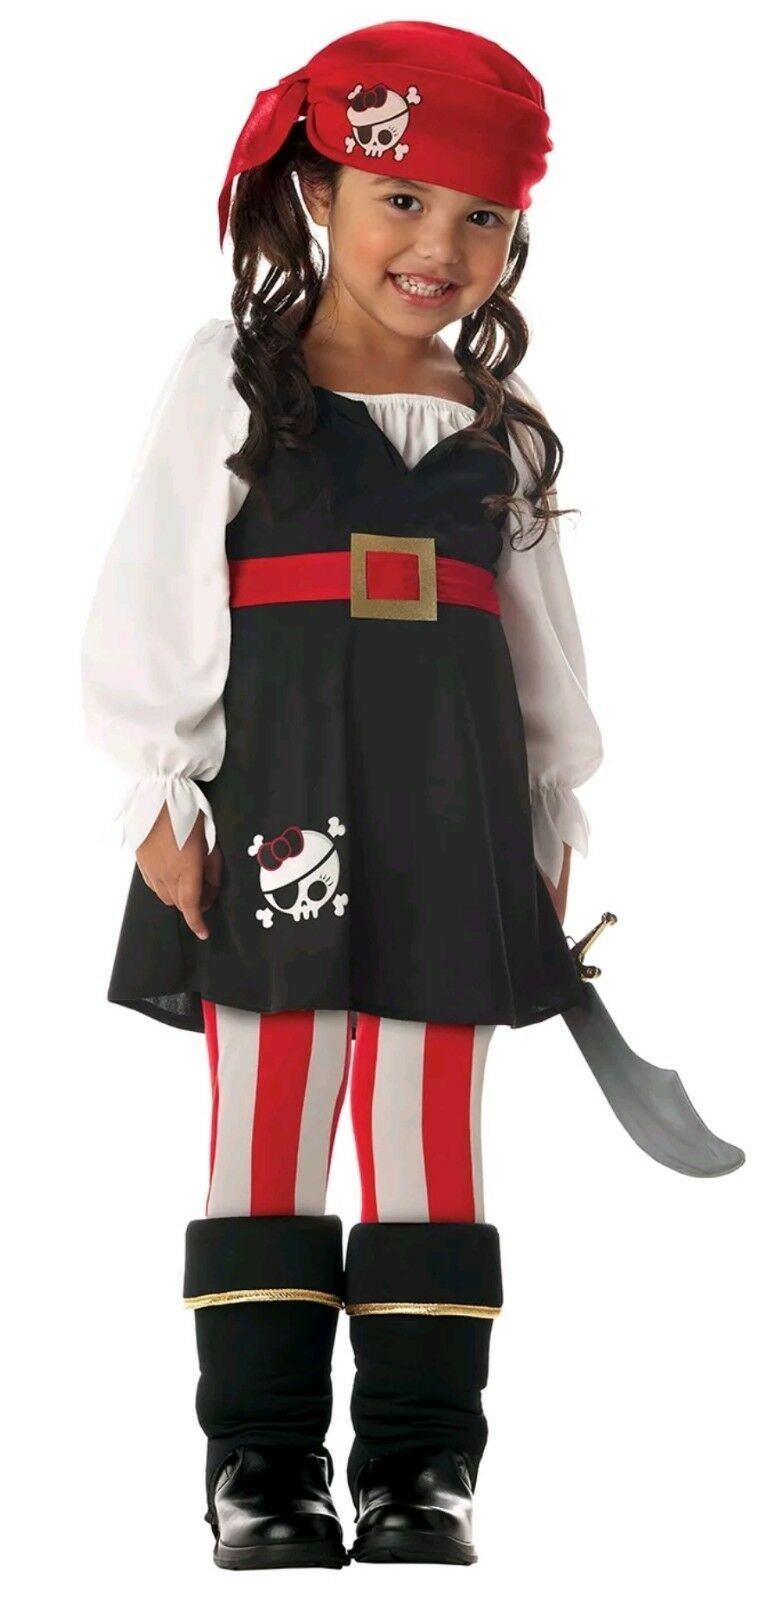 California Costumes Precious Lil' Pirate Girl's Costume, Toddler M 3-4 Dress Up